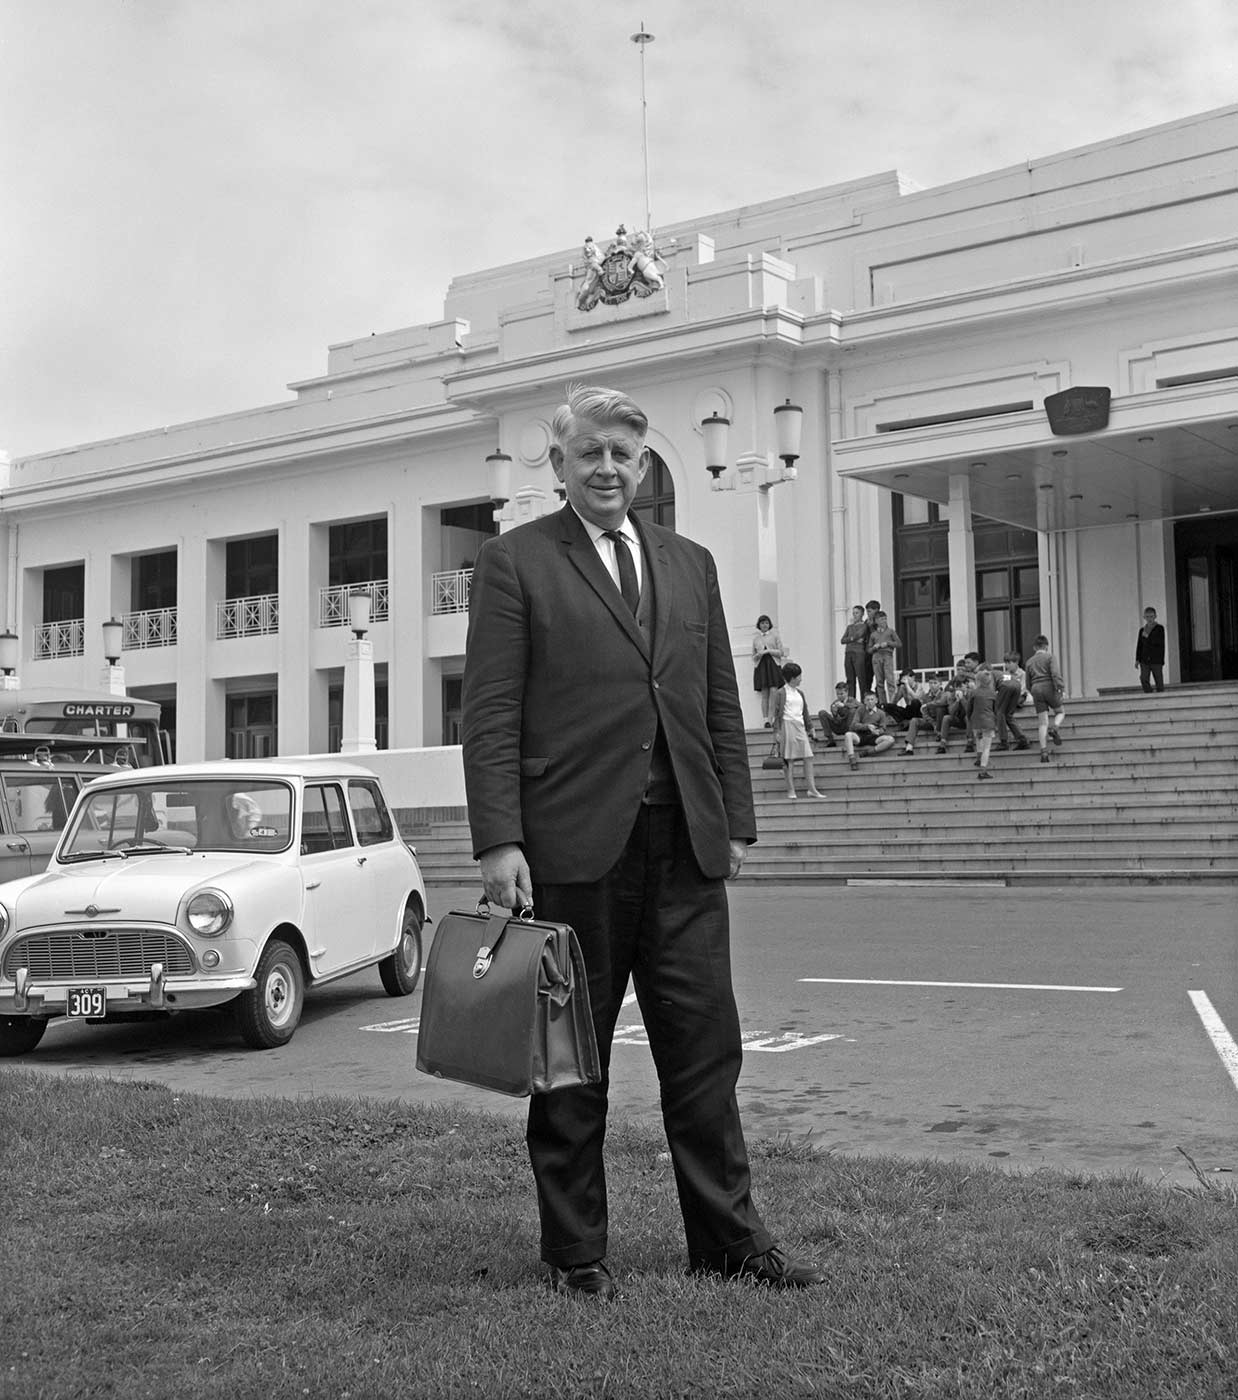 Black and white photo of a man in a business suit standing outside the front of parliament house in Canberra.